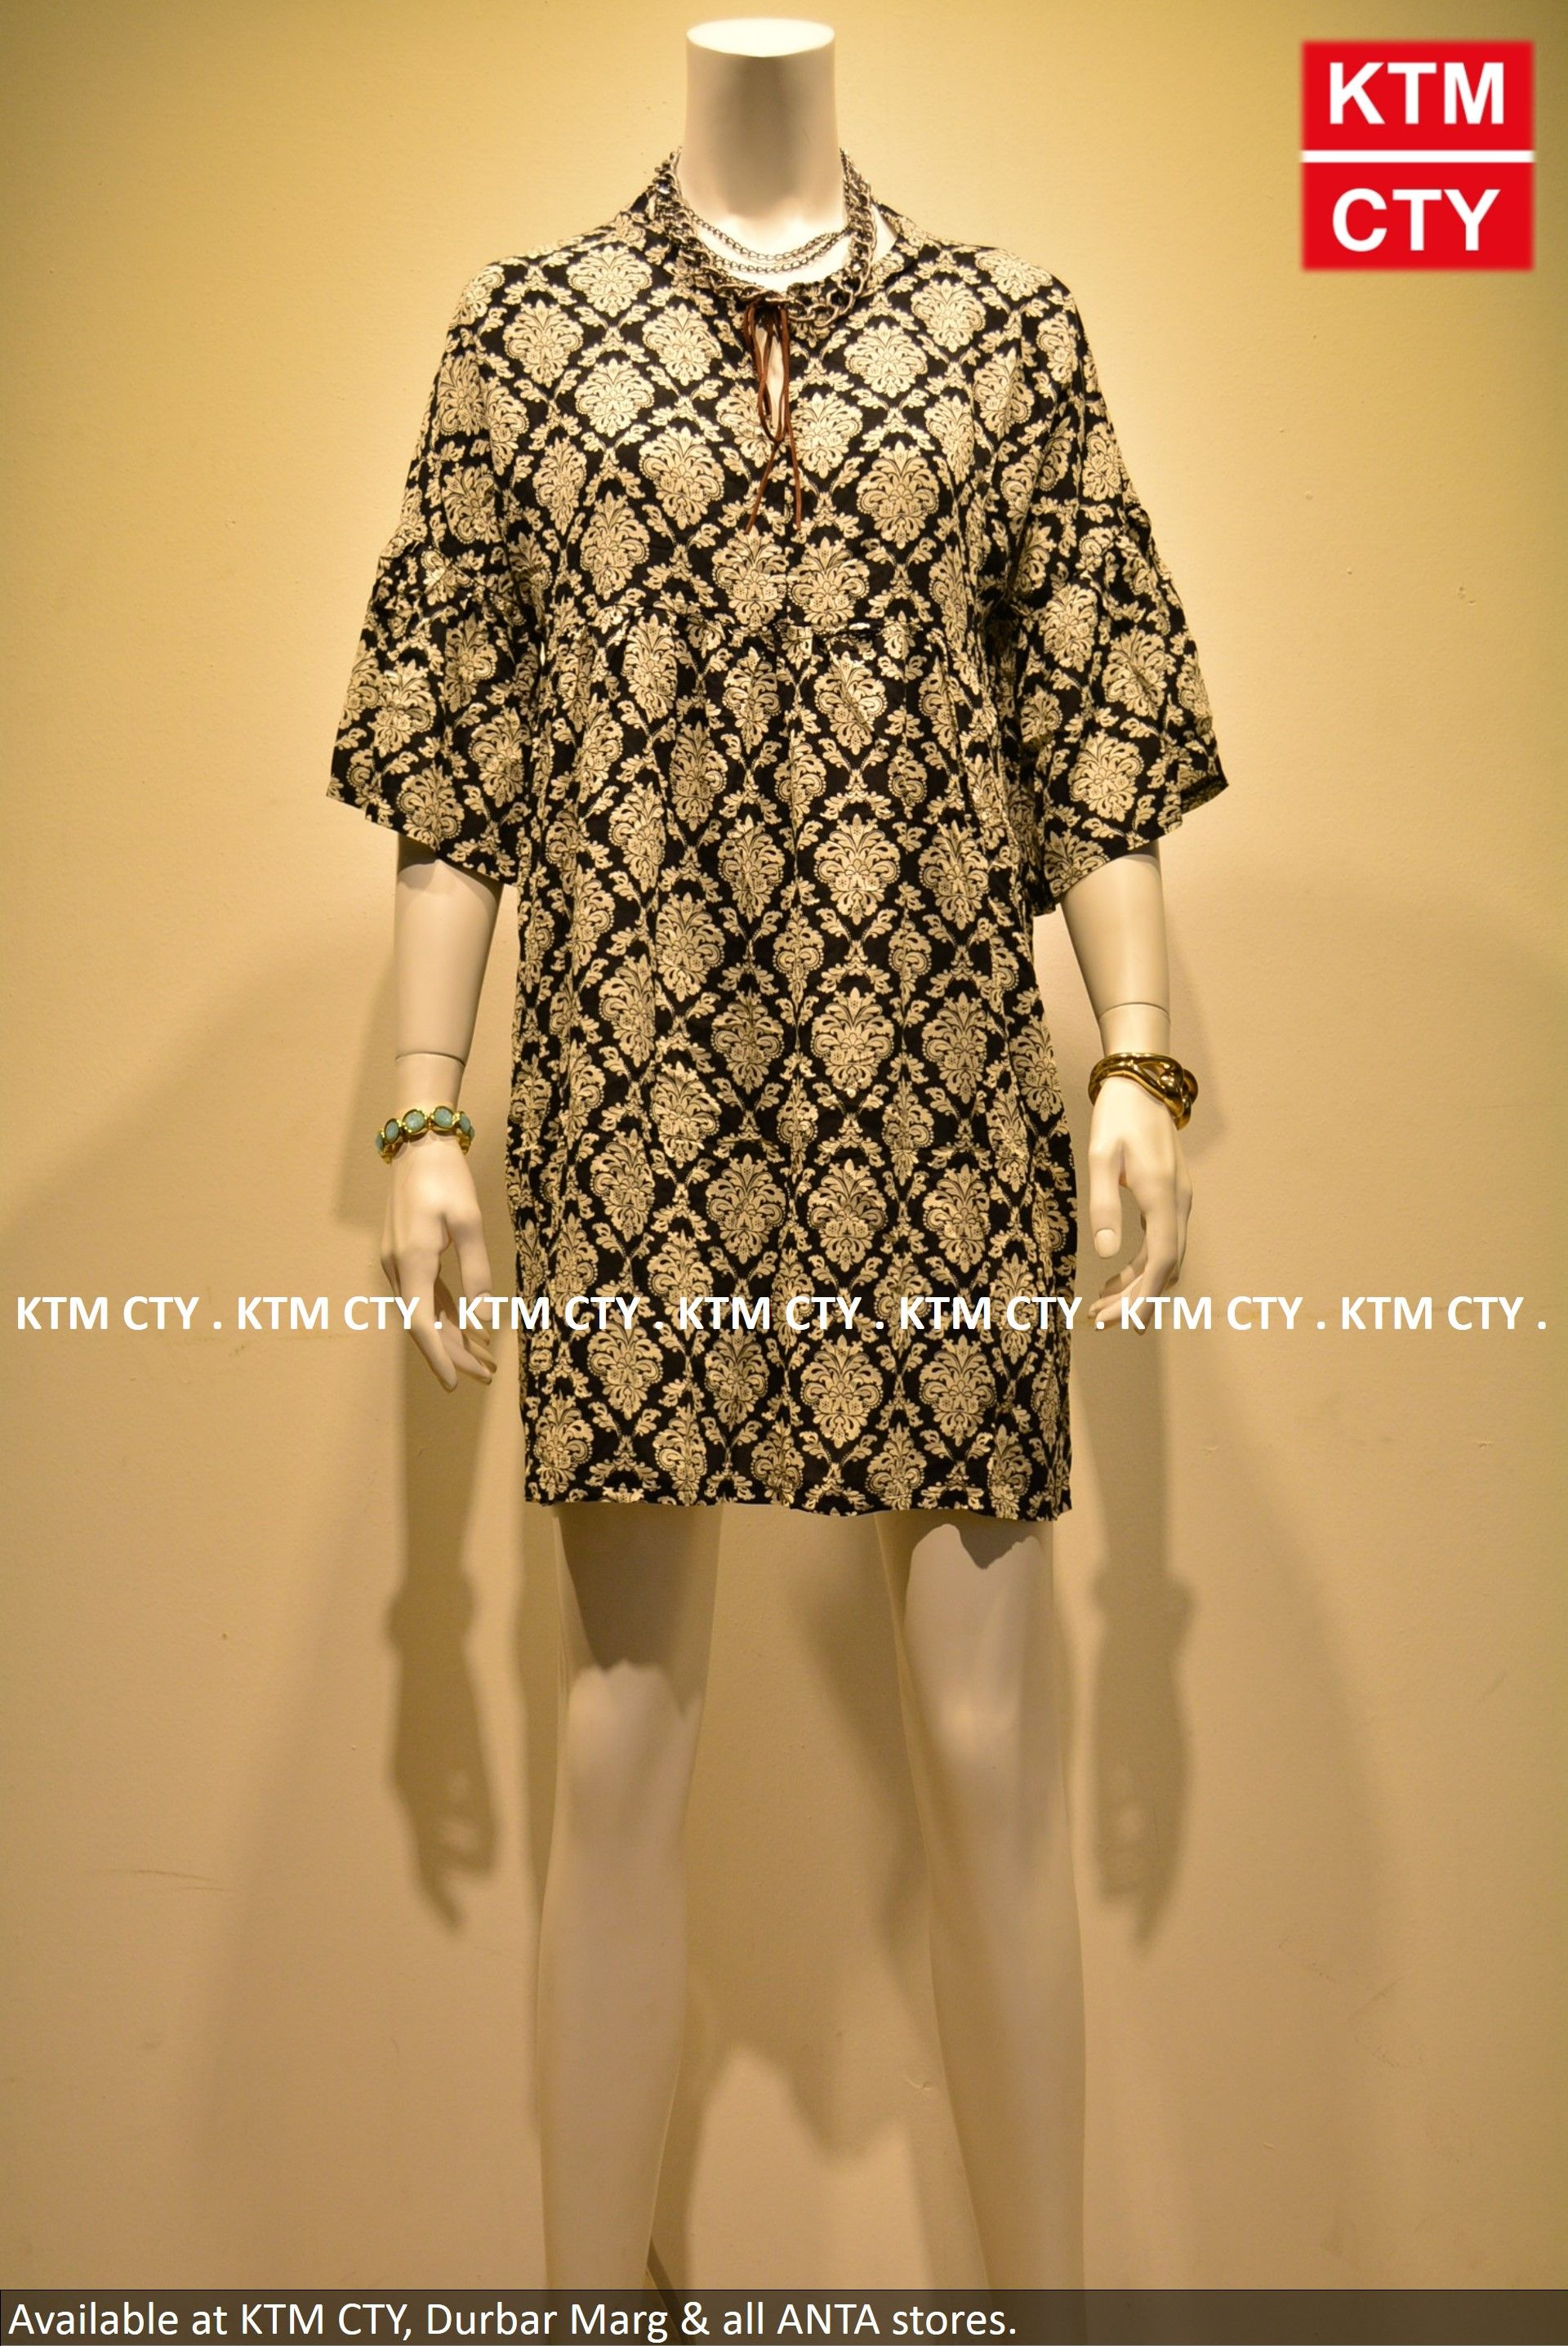 These are the latest casual collection of KTM CTY for women for Summer 2014.  #KTMCTY #Fashion #Dresses #Women #Summer